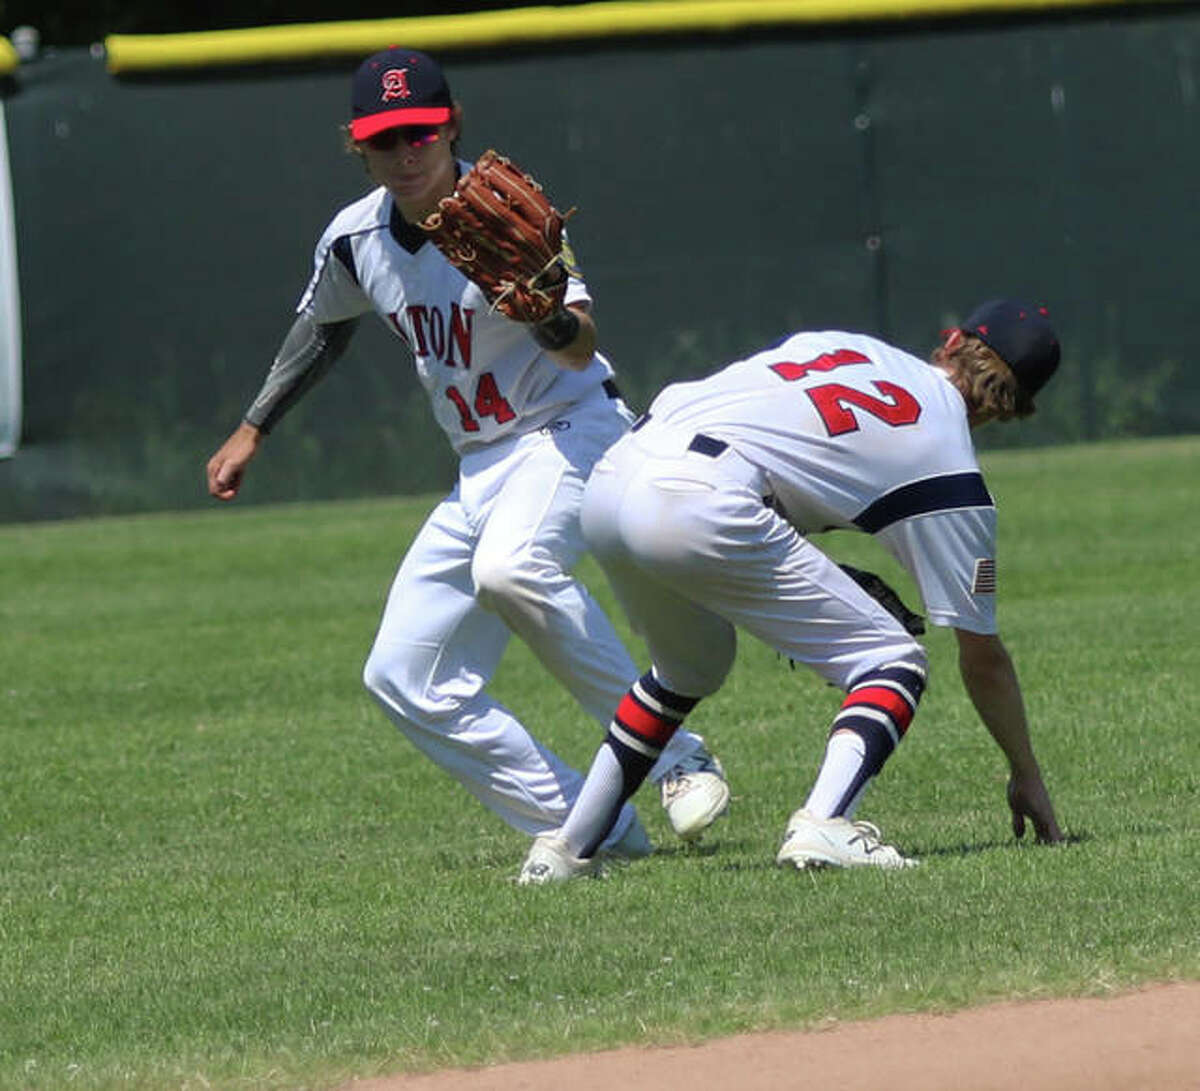 Alton's Preston Schepers, left, went 4 for 4 at the plate with a double, two RBIs and two runs scored in a 10-6 loss to Belleville Saturday in Belleville. He is shown in action last season.